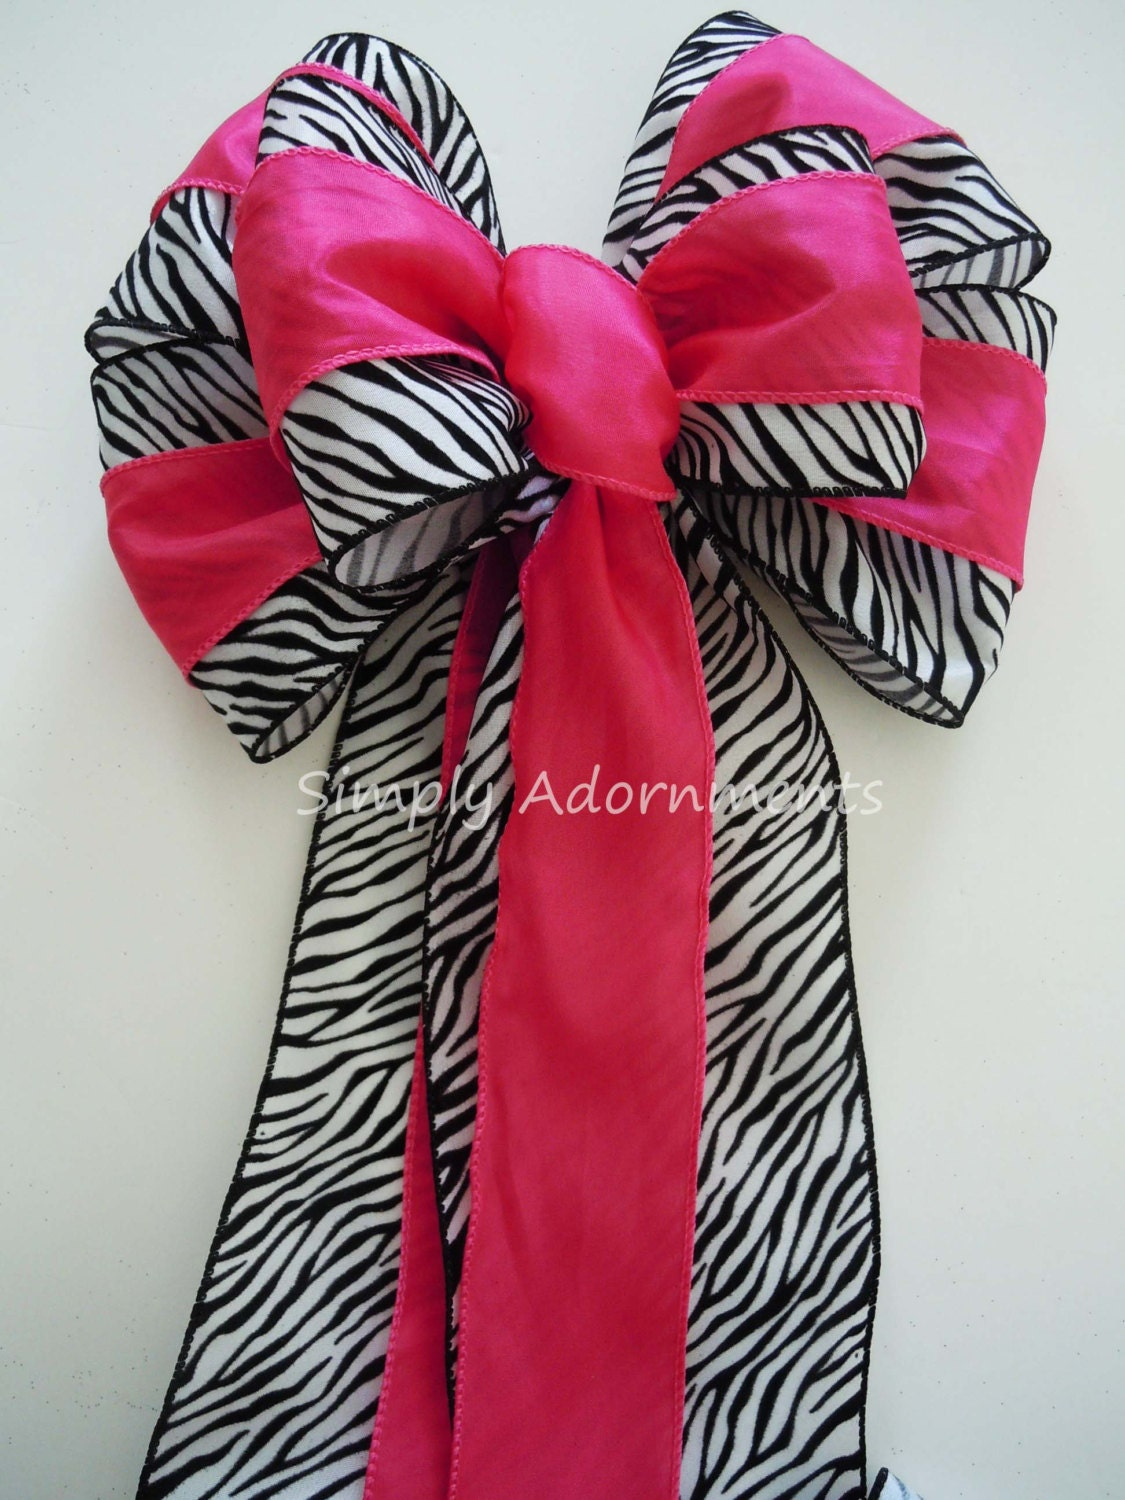 Pink Zebra Birthday Party Decor Hot Christmas Tree Topper Decoration Wedding Pew Bow Animal Theme Gift